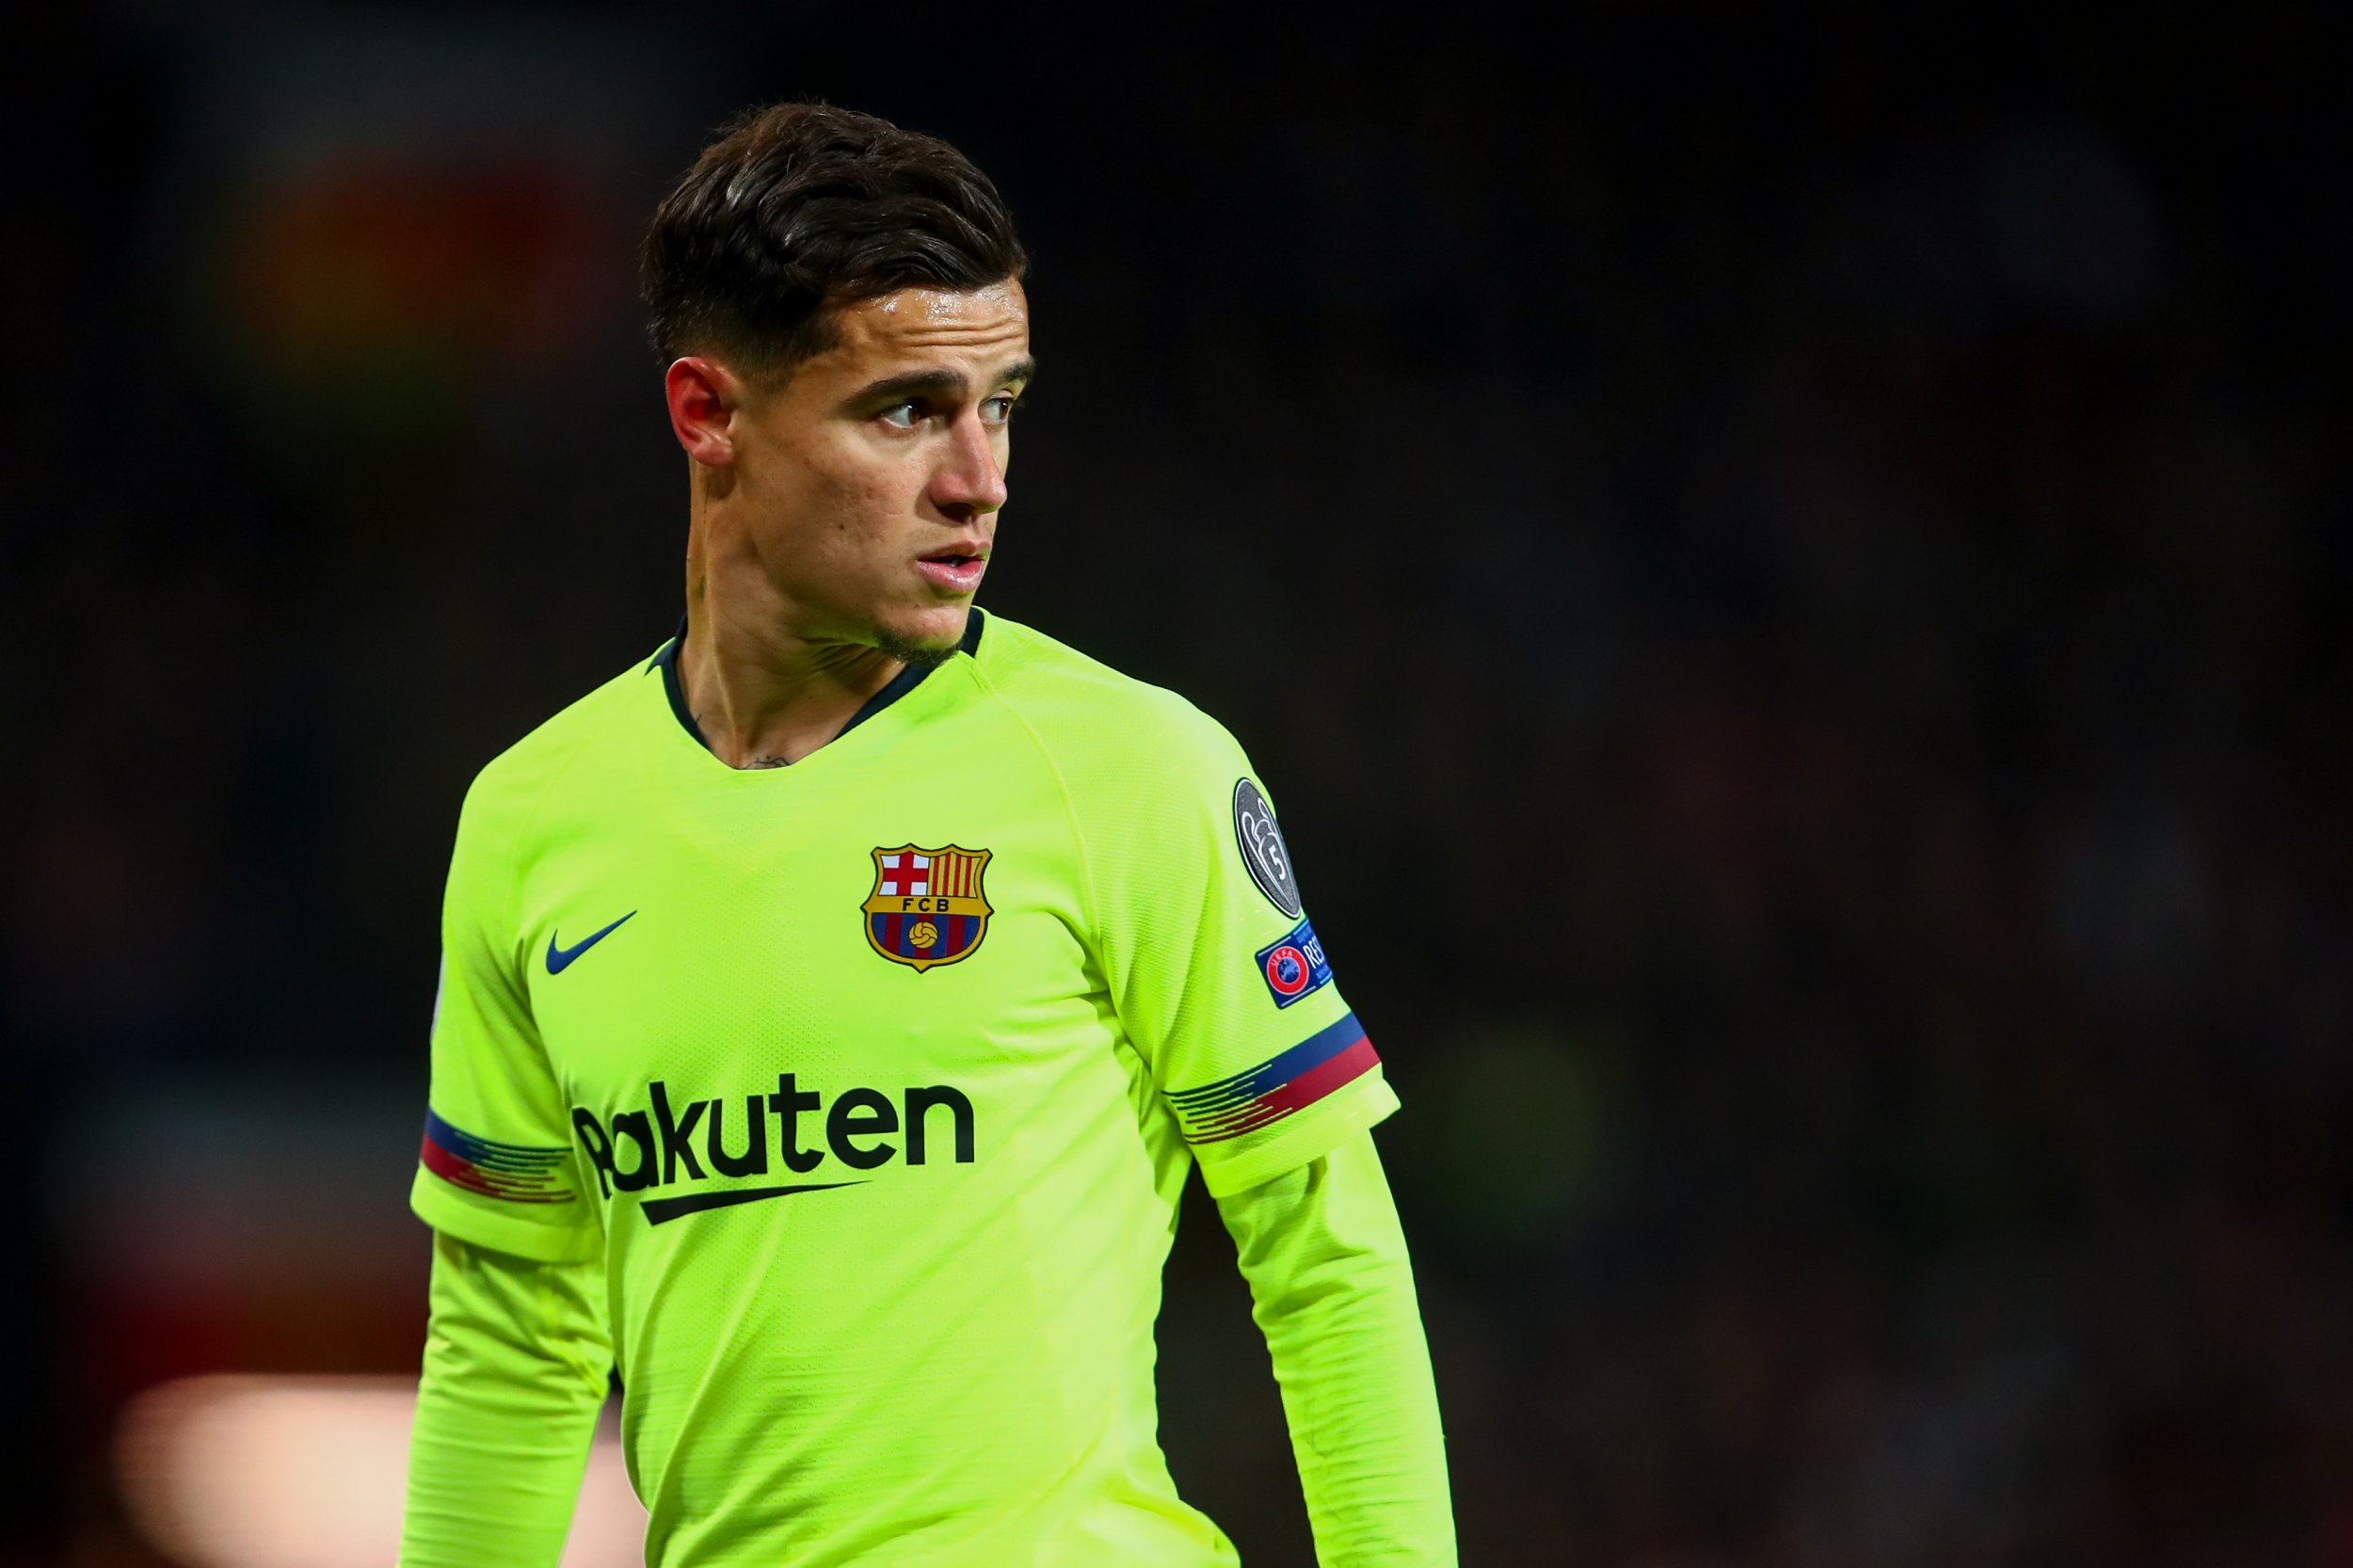 MANCHESTER, ENGLAND - APRIL 10: Philippe Coutinho of FC Barcelona during the UEFA Champions League Quarter Final first leg match between Manchester United and FC Barcelona at Old Trafford on April 10, 2019 in Manchester, England. (Photo by Robbie Jay Barratt - AMA/Getty Images)